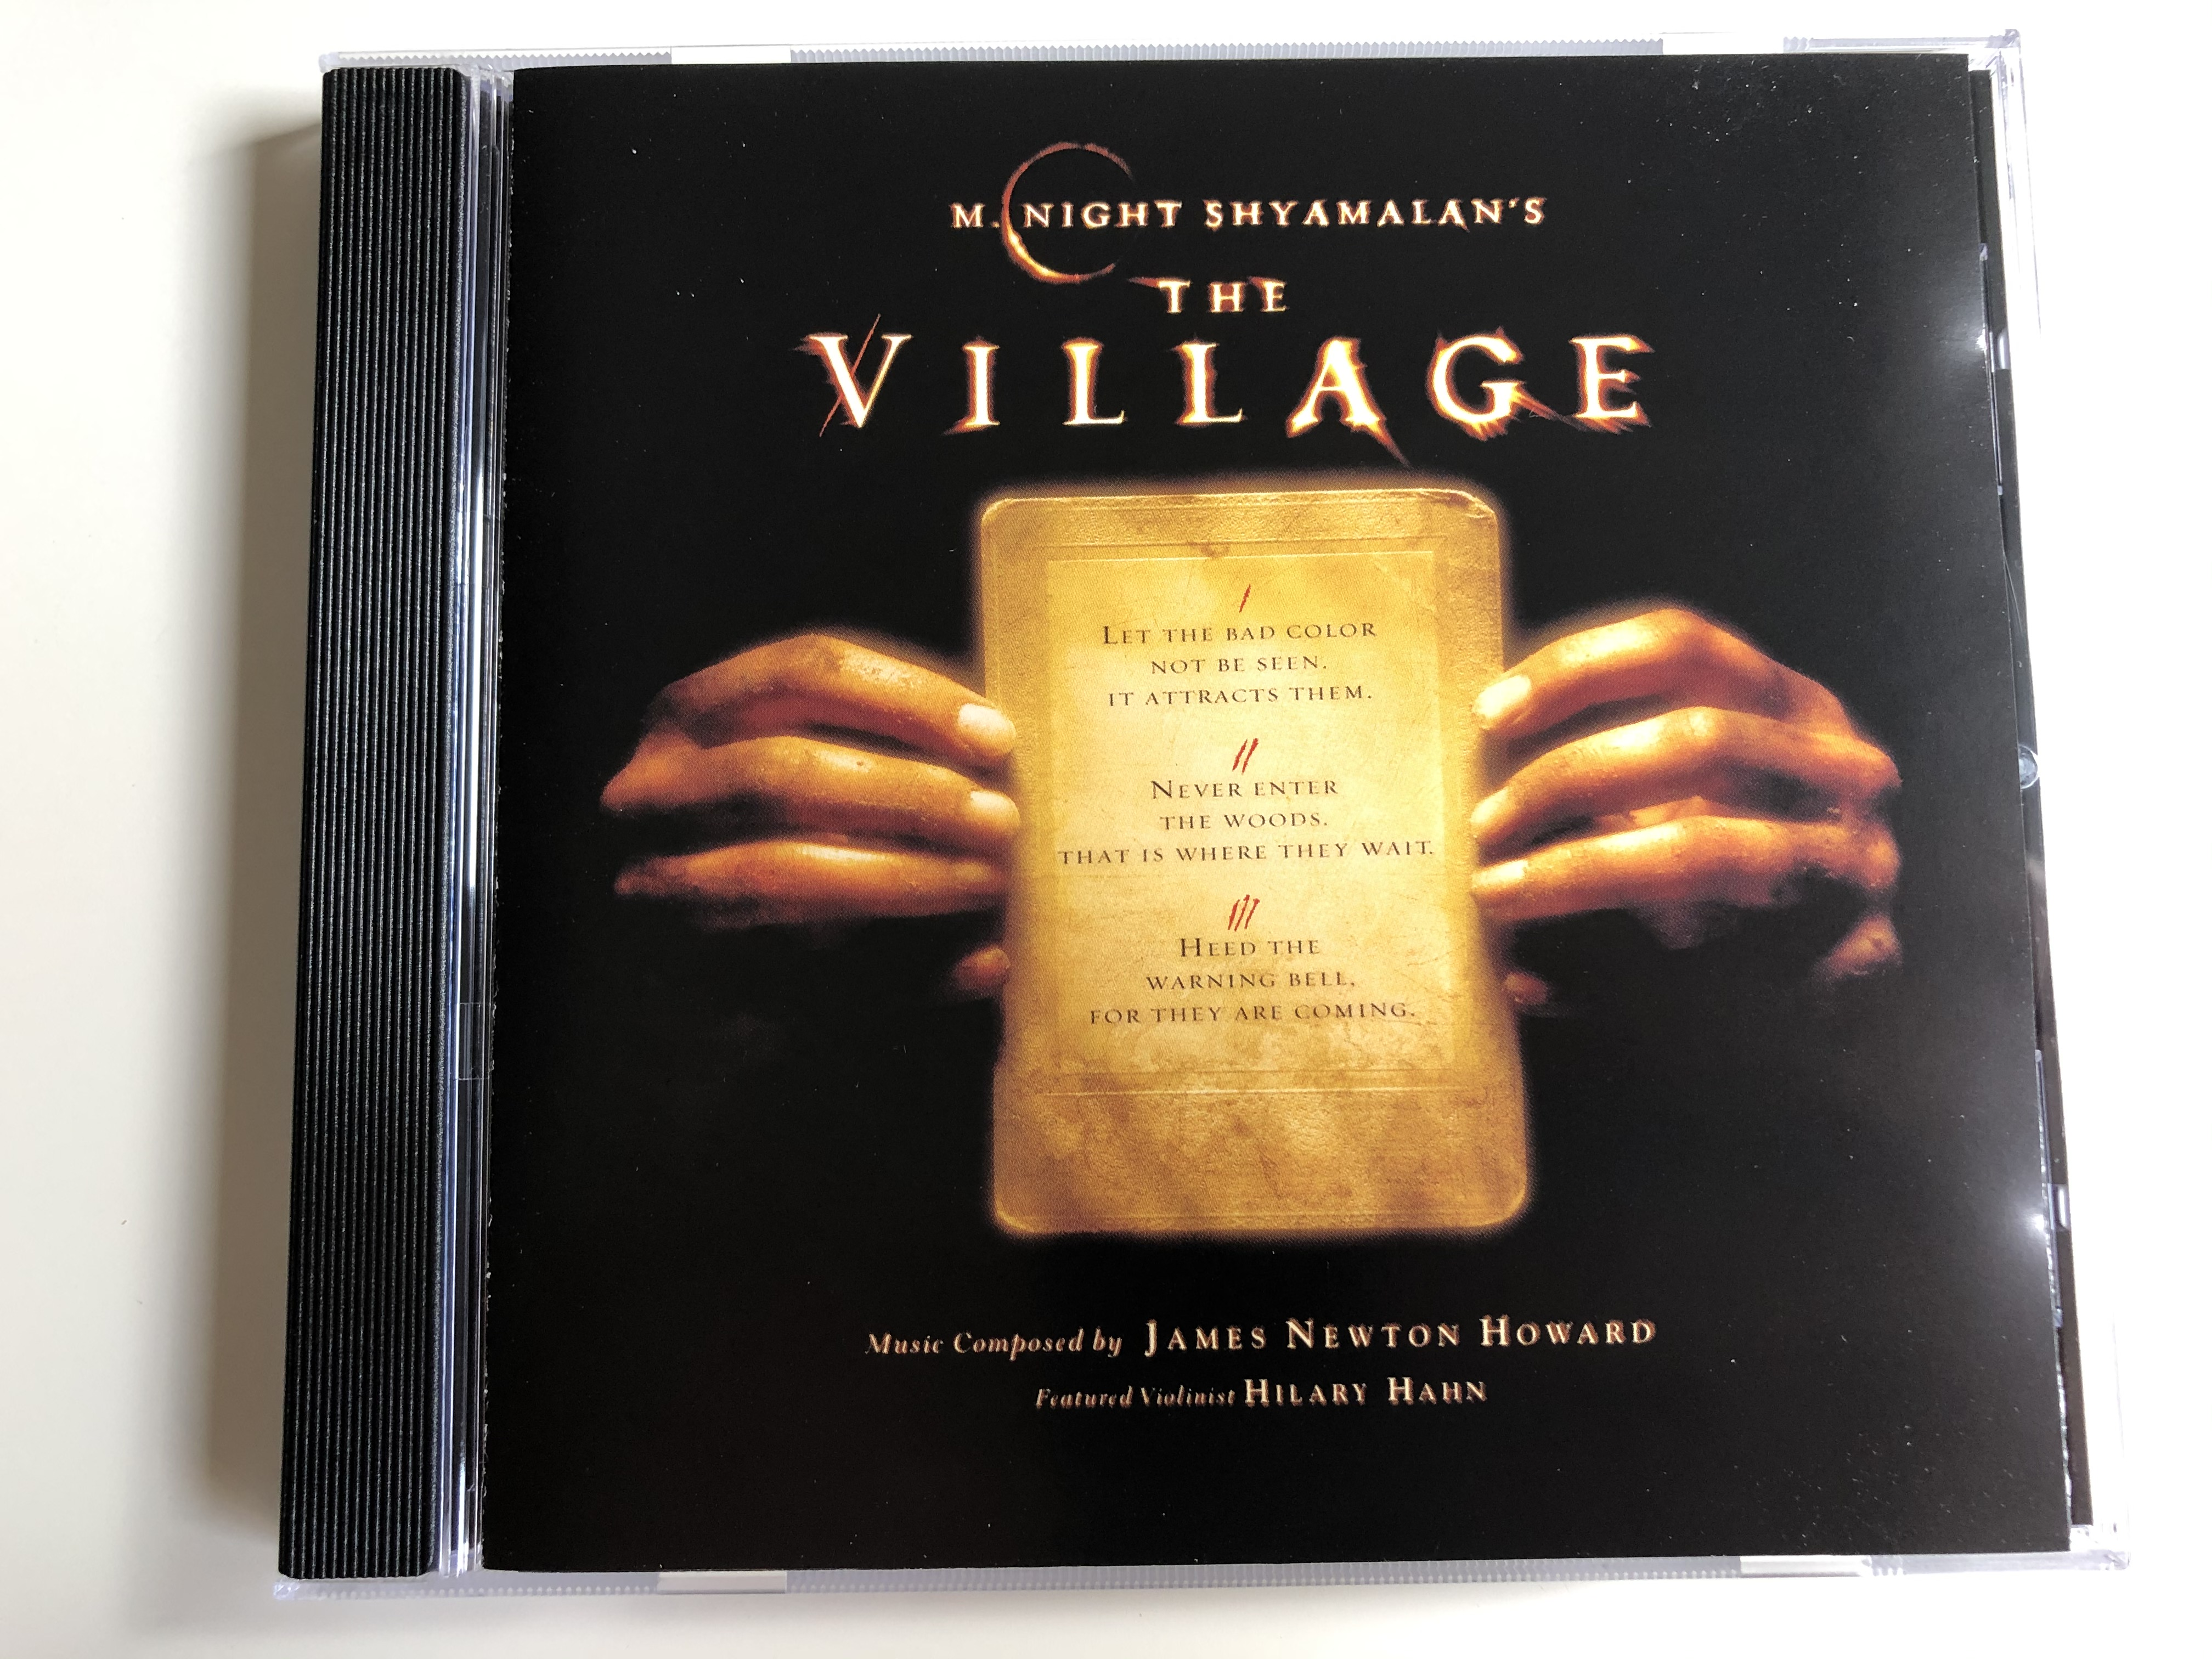 m.-night-shyamalan-s-the-village-music-composed-by-james-newton-howard-featured-violinist-hilary-hahn-hollywood-records-audio-cd-2004-5050467-4883-2-8-1-.jpg